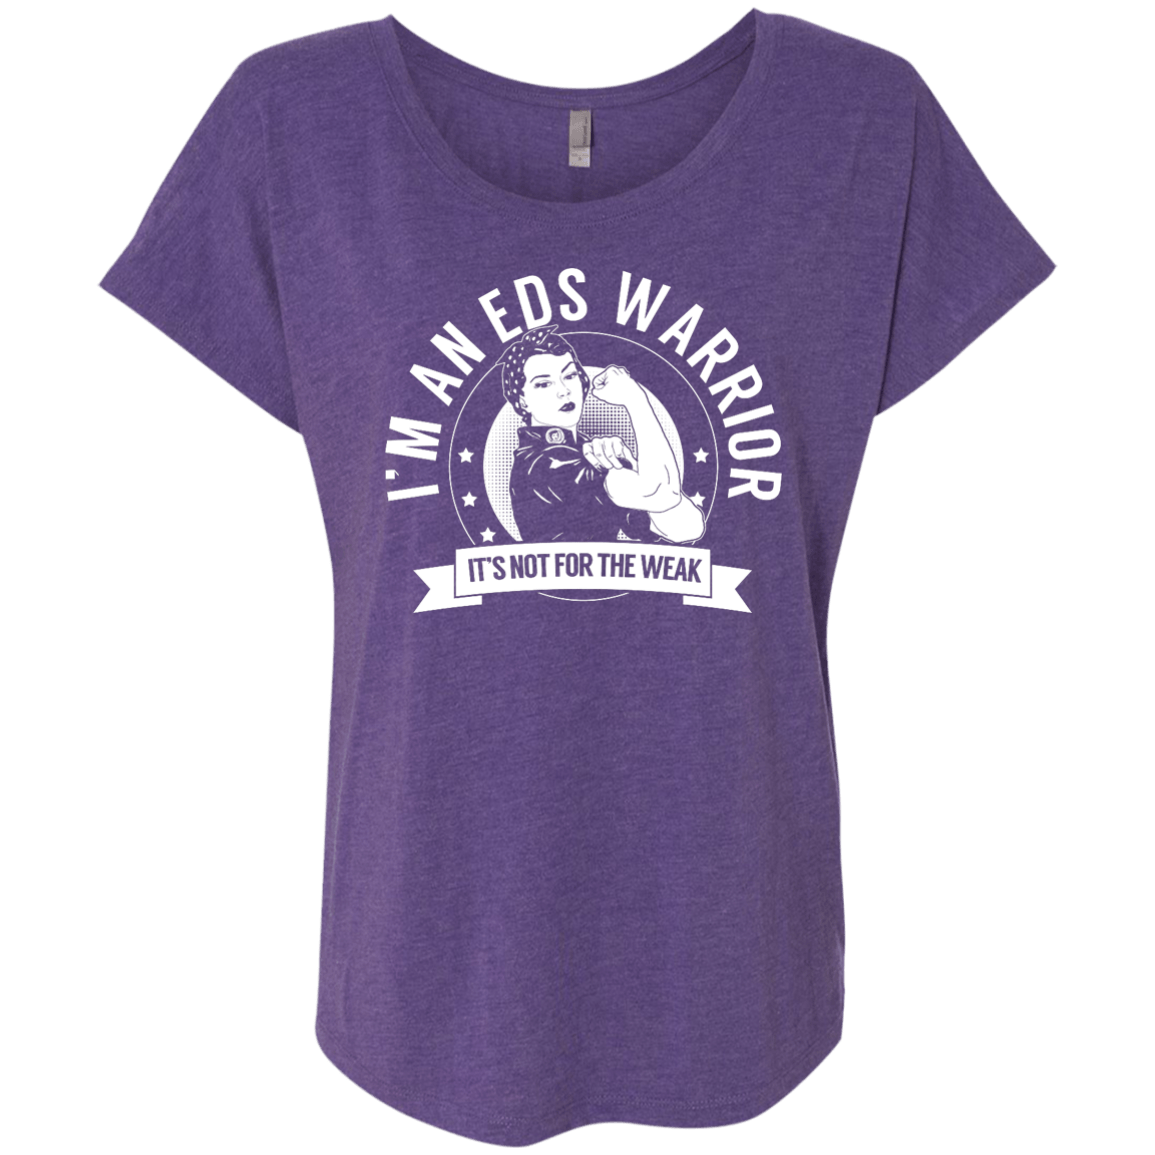 T-Shirts - Ehlers Danlos Syndrome - EDS Warrior Not For The Weak Dolman Sleeve